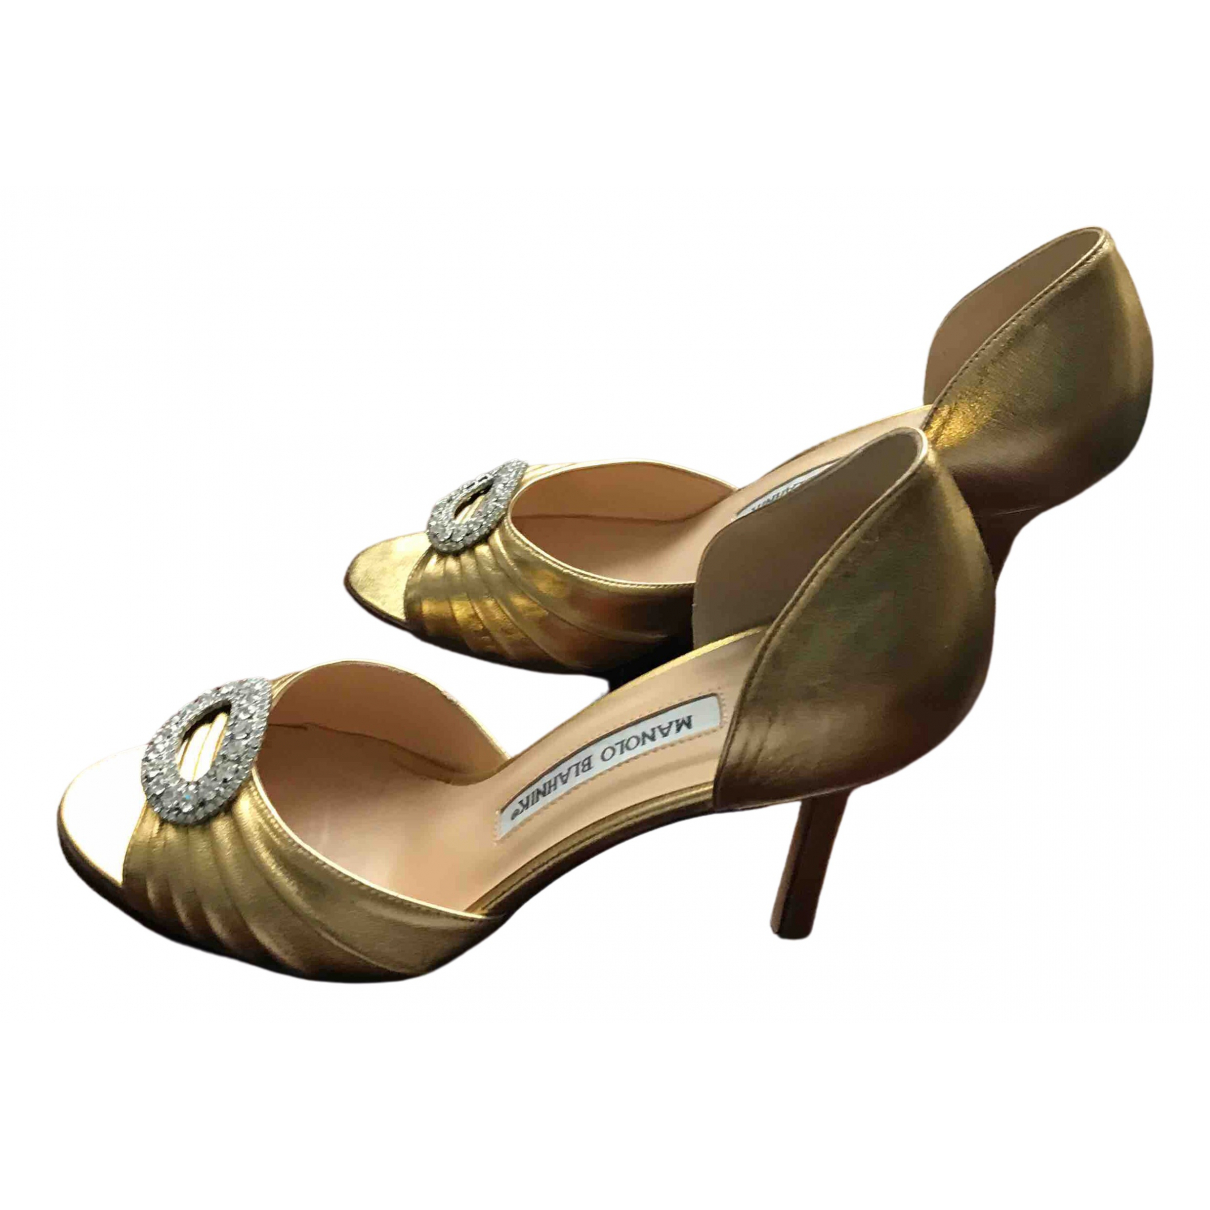 Manolo Blahnik \N Gold Leather Heels for Women 37 EU